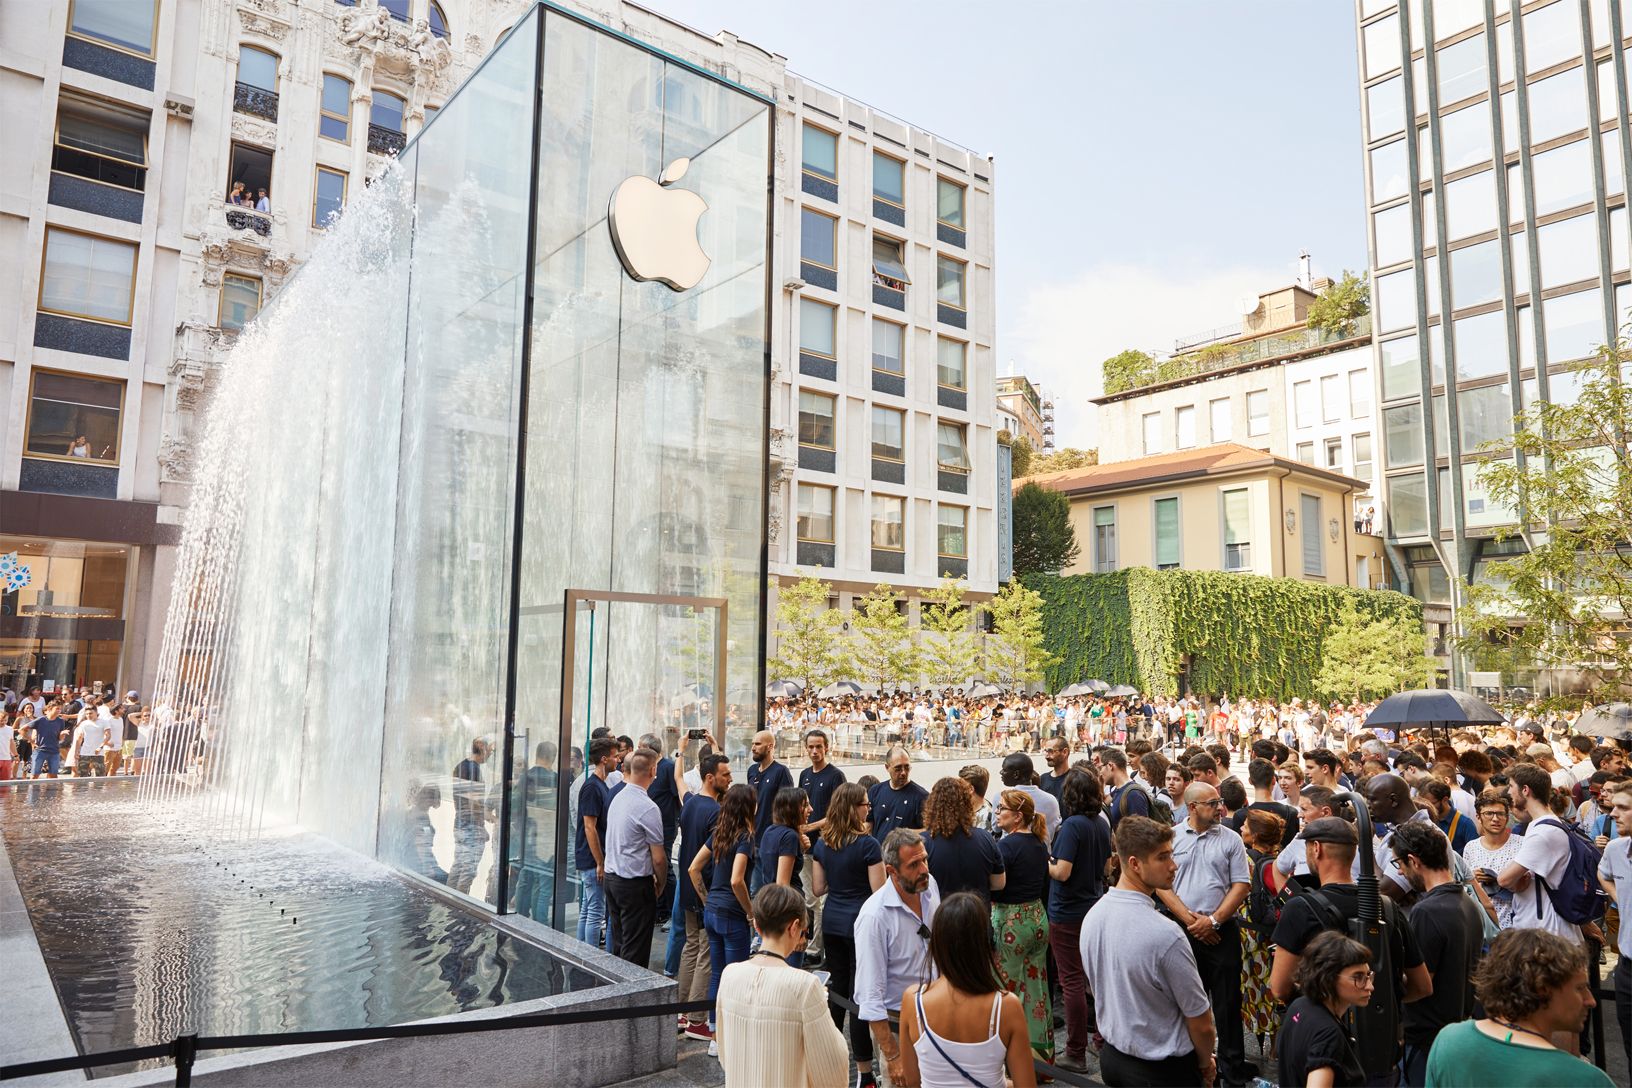 Apple's new store in Milan. Image via Apple